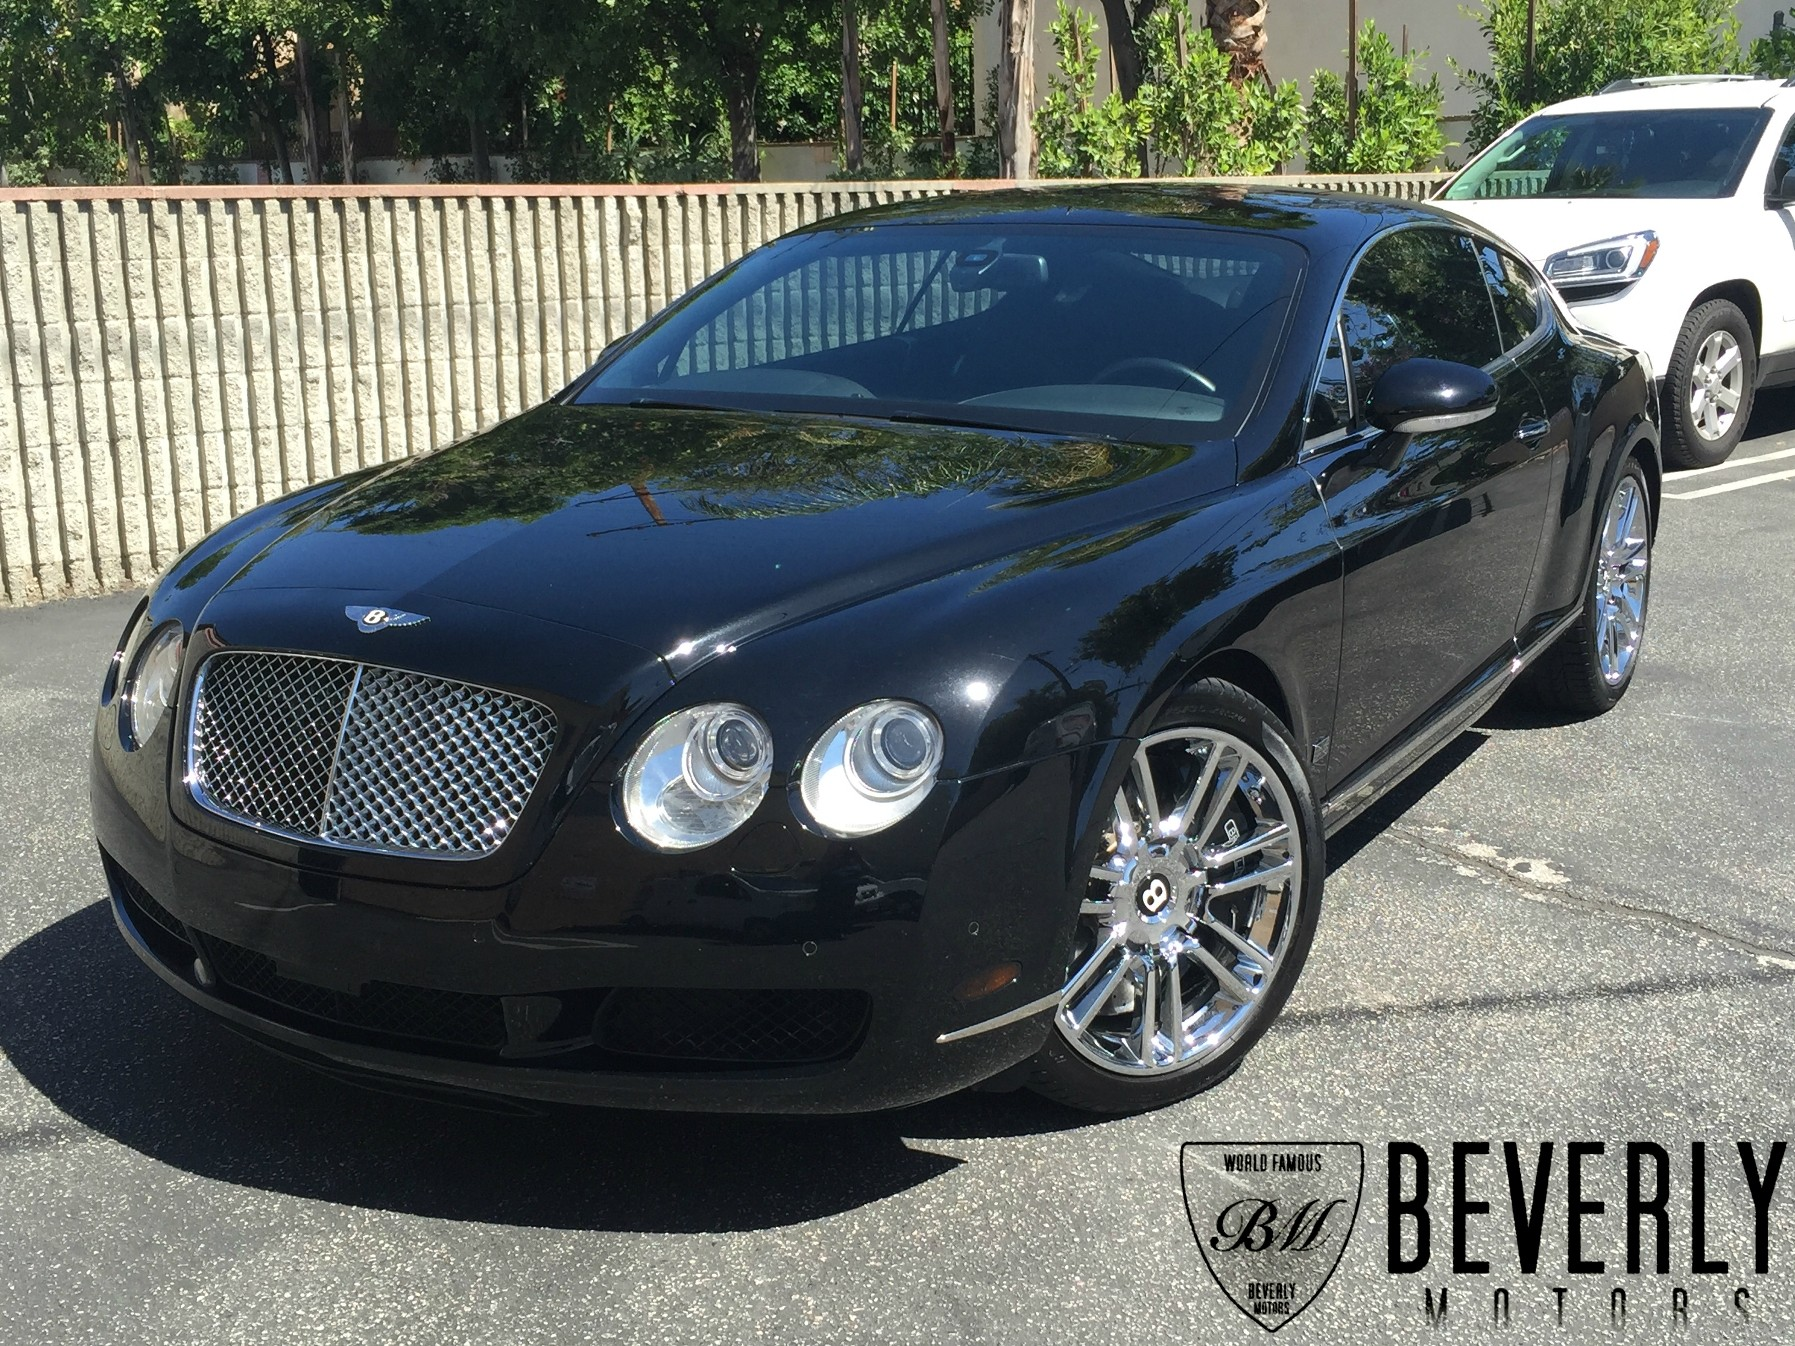 Beverly Motors Inc Glendale Auto Leasing And Sales New Car - Bentley continental lease